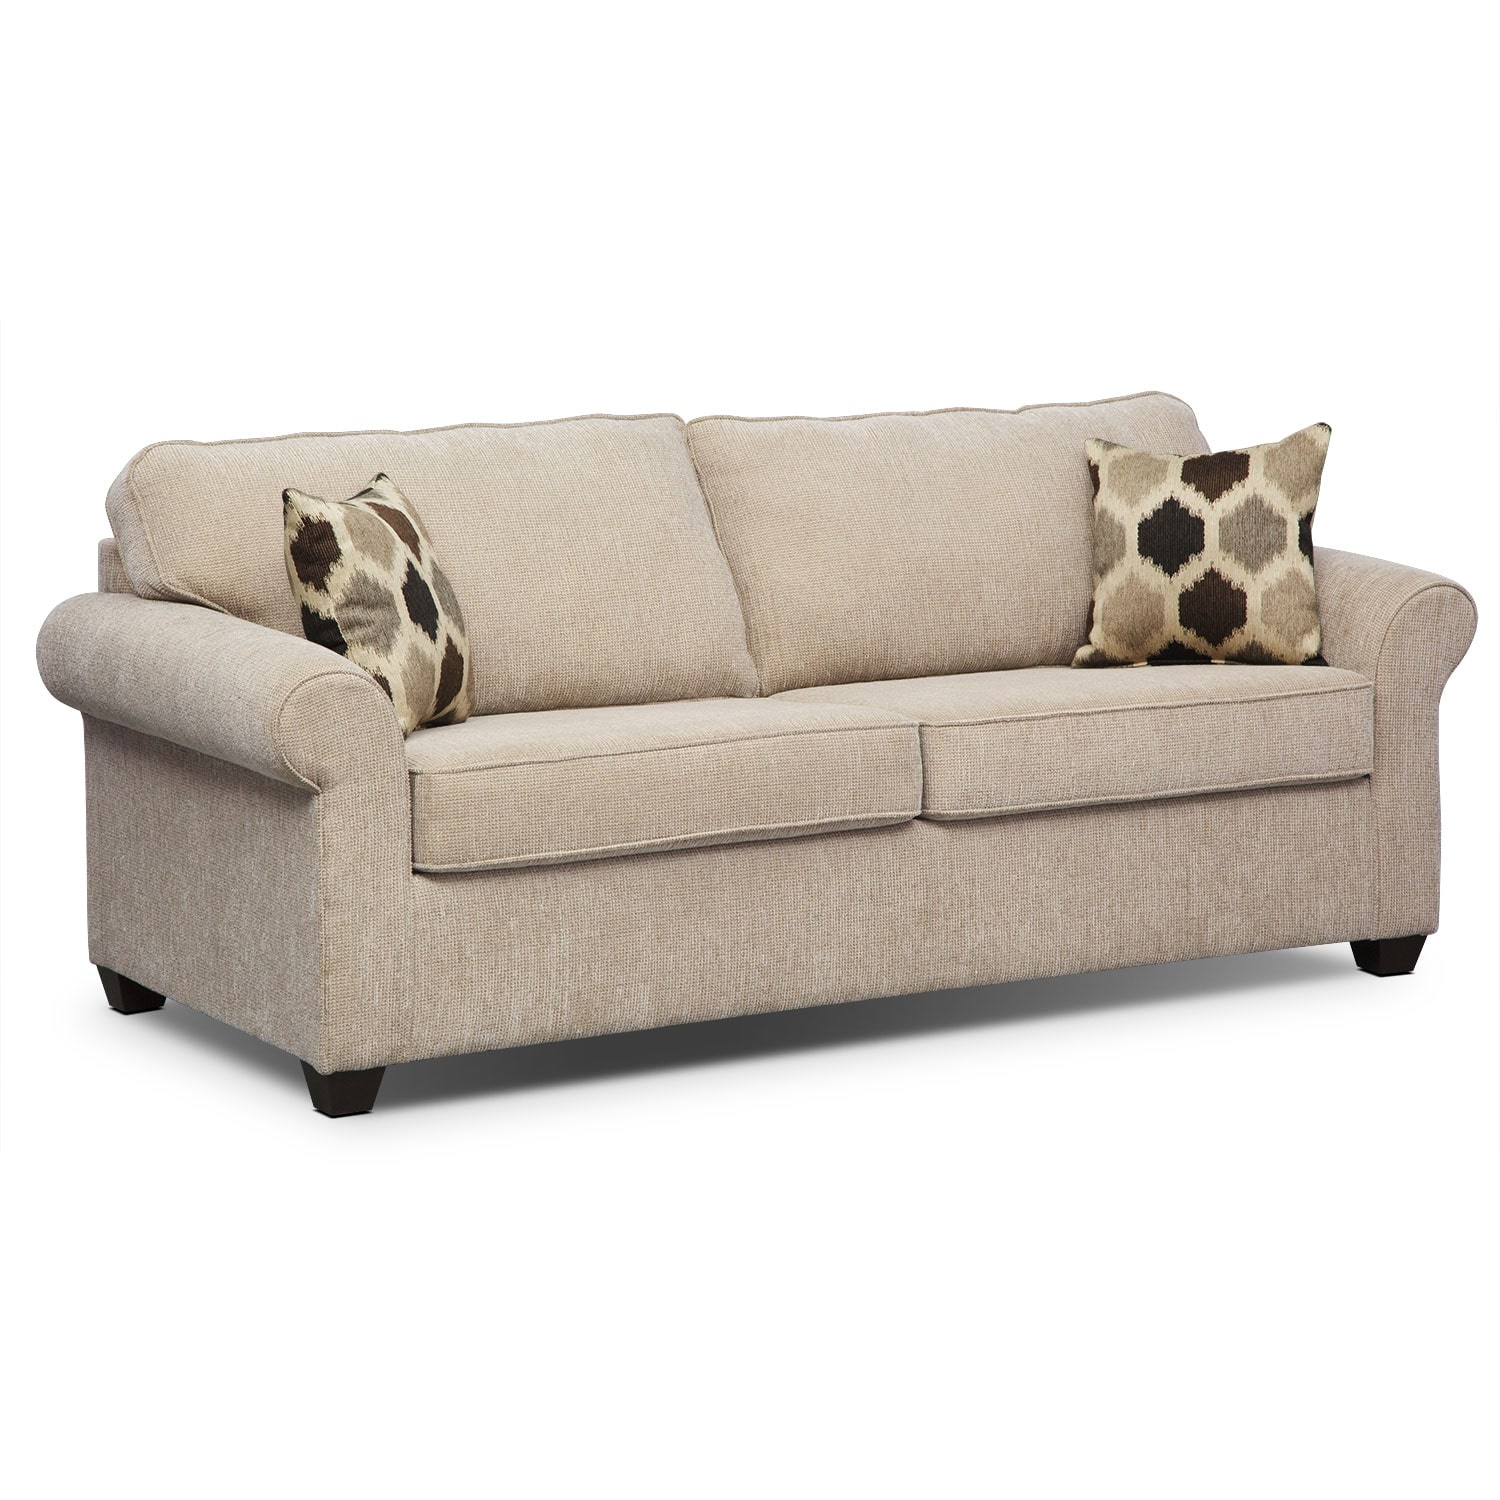 Fletcher queen memory foam sleeper sofa beige american for Sectional sofa with recliner and queen sleeper